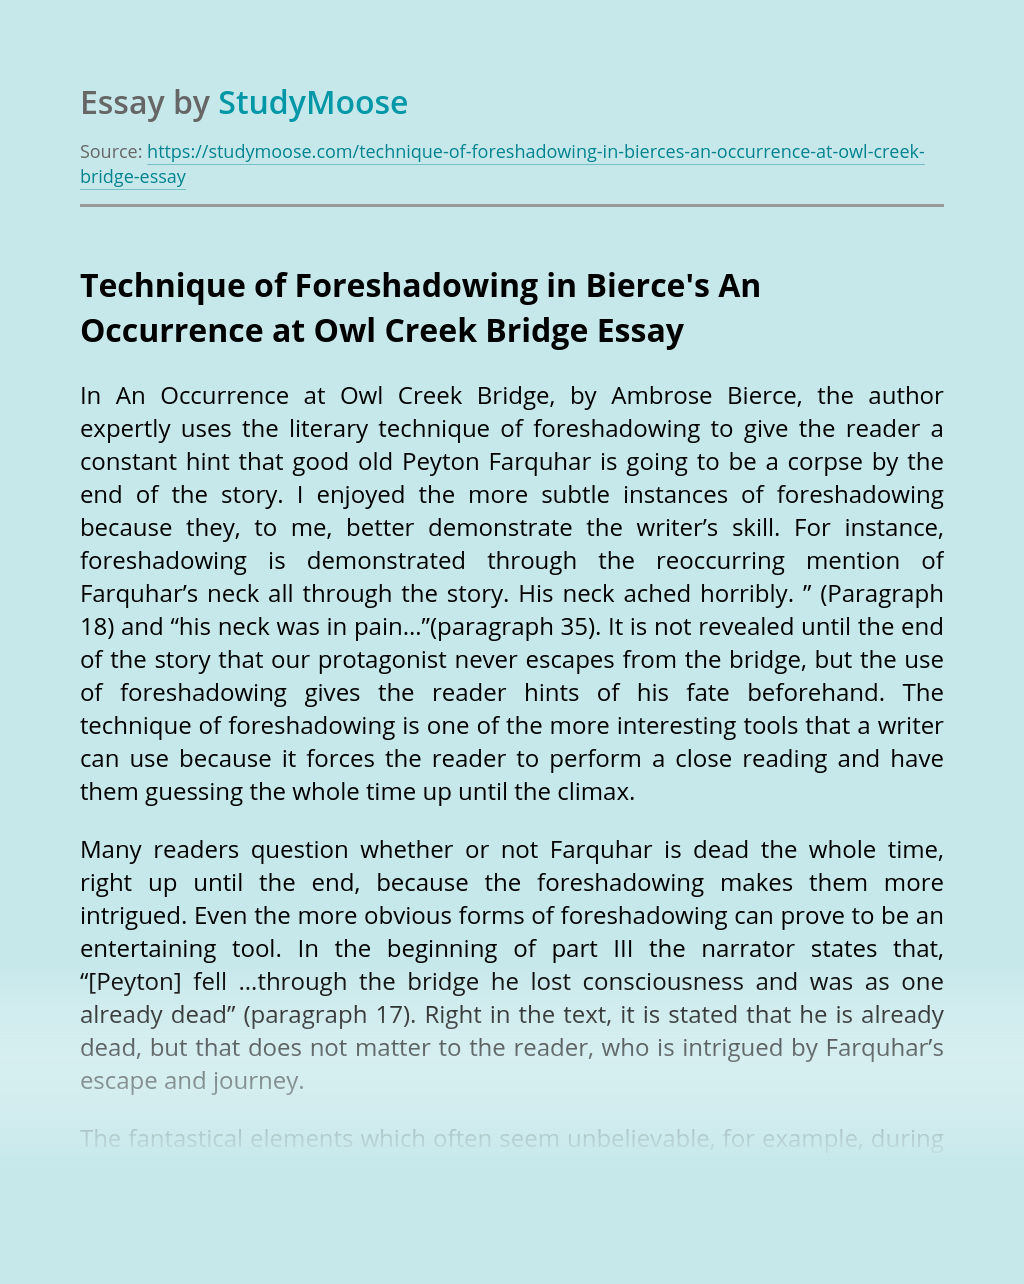 Technique of Foreshadowing in Bierce's An Occurrence at Owl Creek Bridge